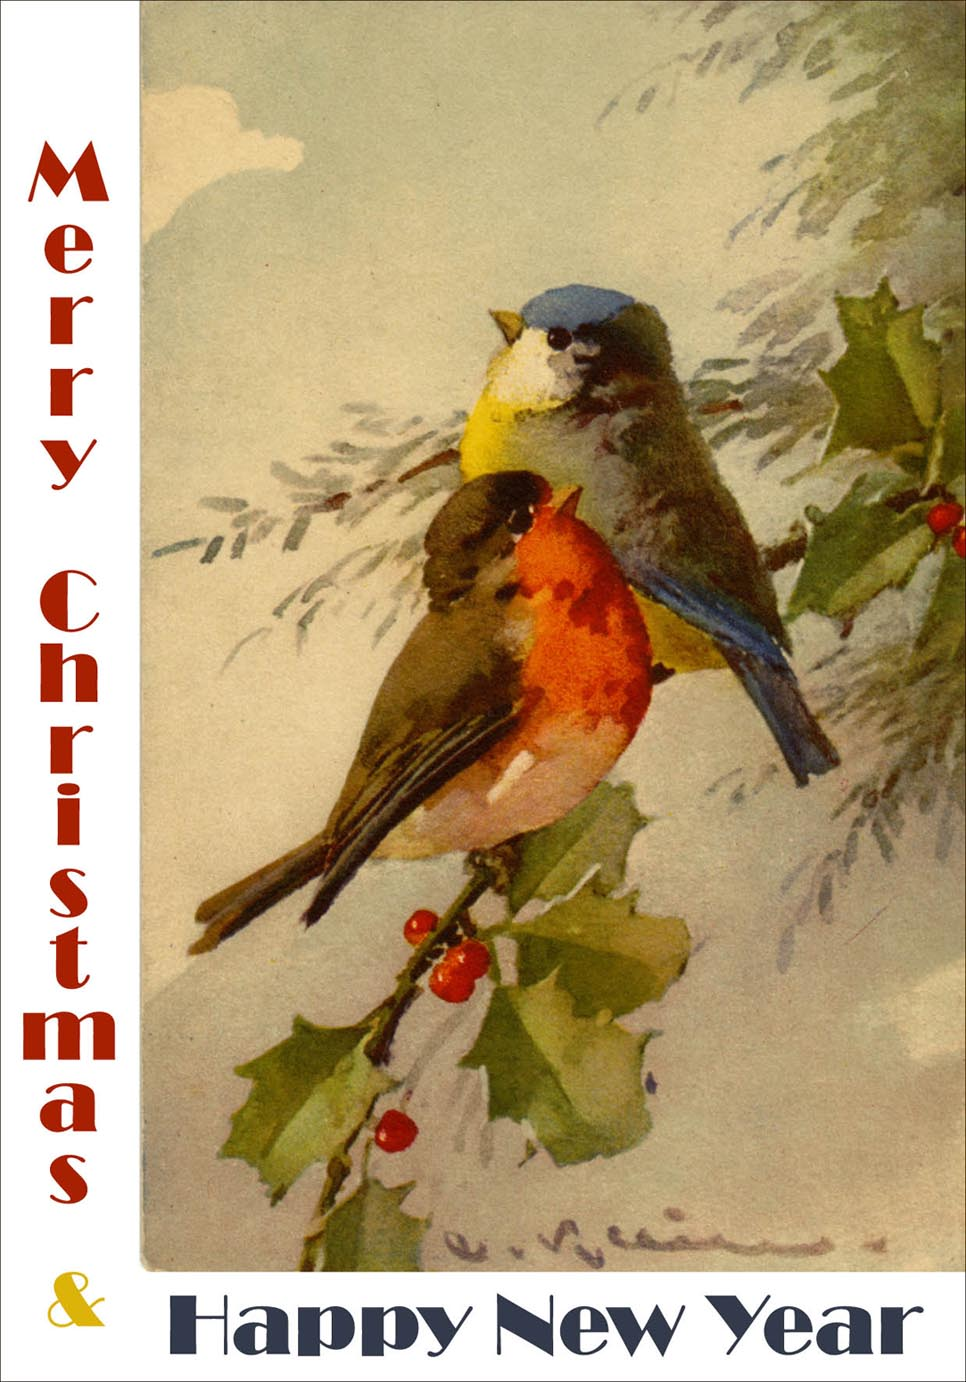 Free printable vintage christmas cards - Vintage New Year And Christmas Greeting Card With 2 Colorful Winter Birds